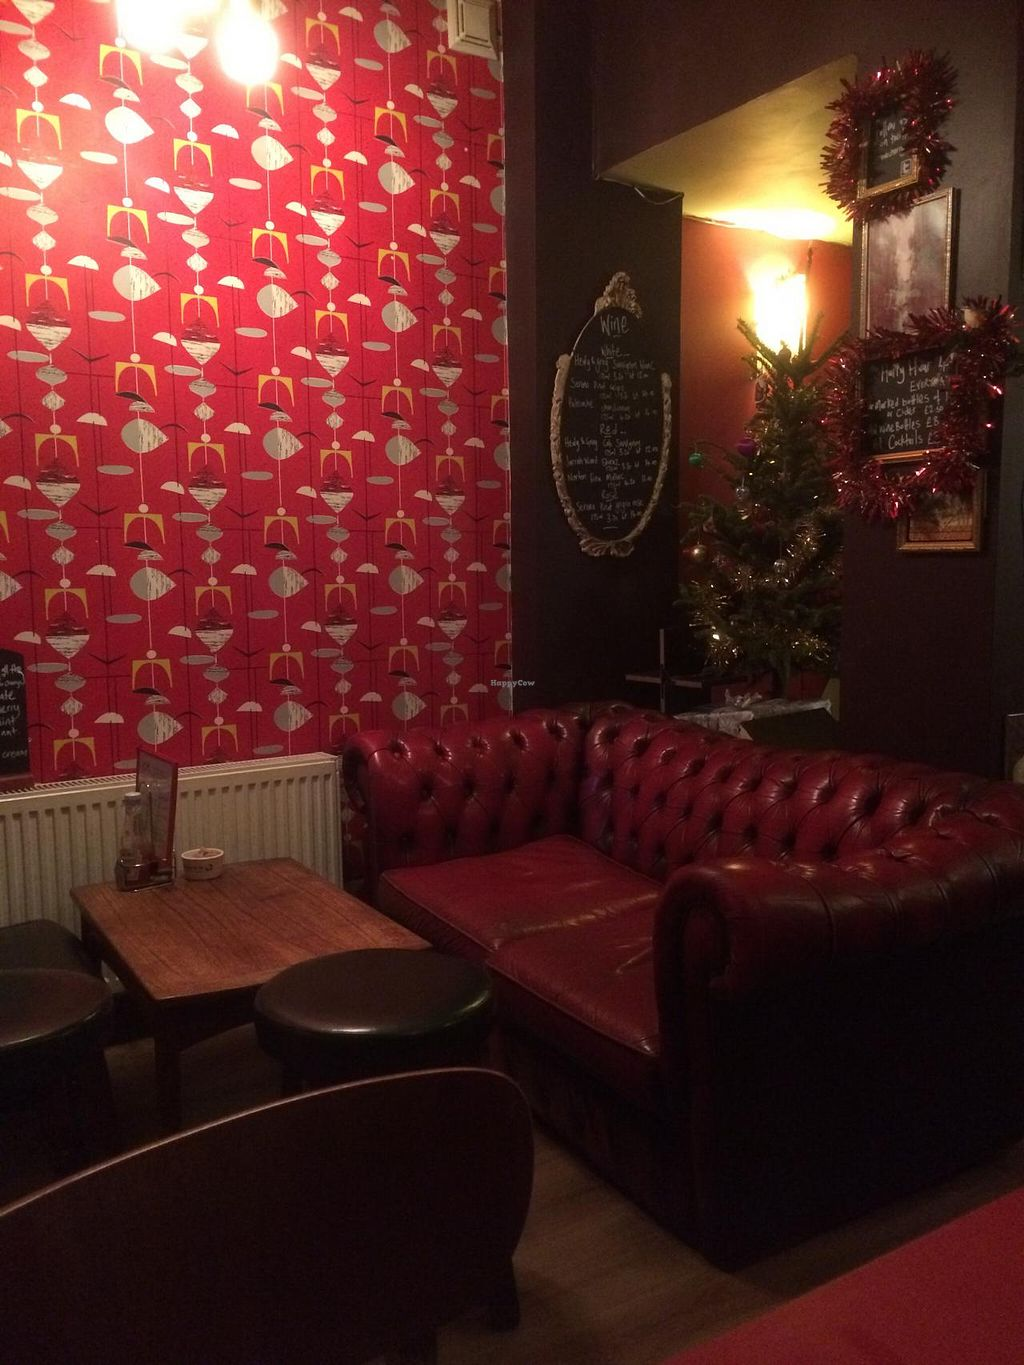 "Photo of Cherry Reds Cafe and Bar - Kings Heath  by <a href=""/members/profile/alia_801"">alia_801</a> <br/>Comfy seating in the cafe too <br/> January 23, 2015  - <a href='/contact/abuse/image/54476/91087'>Report</a>"